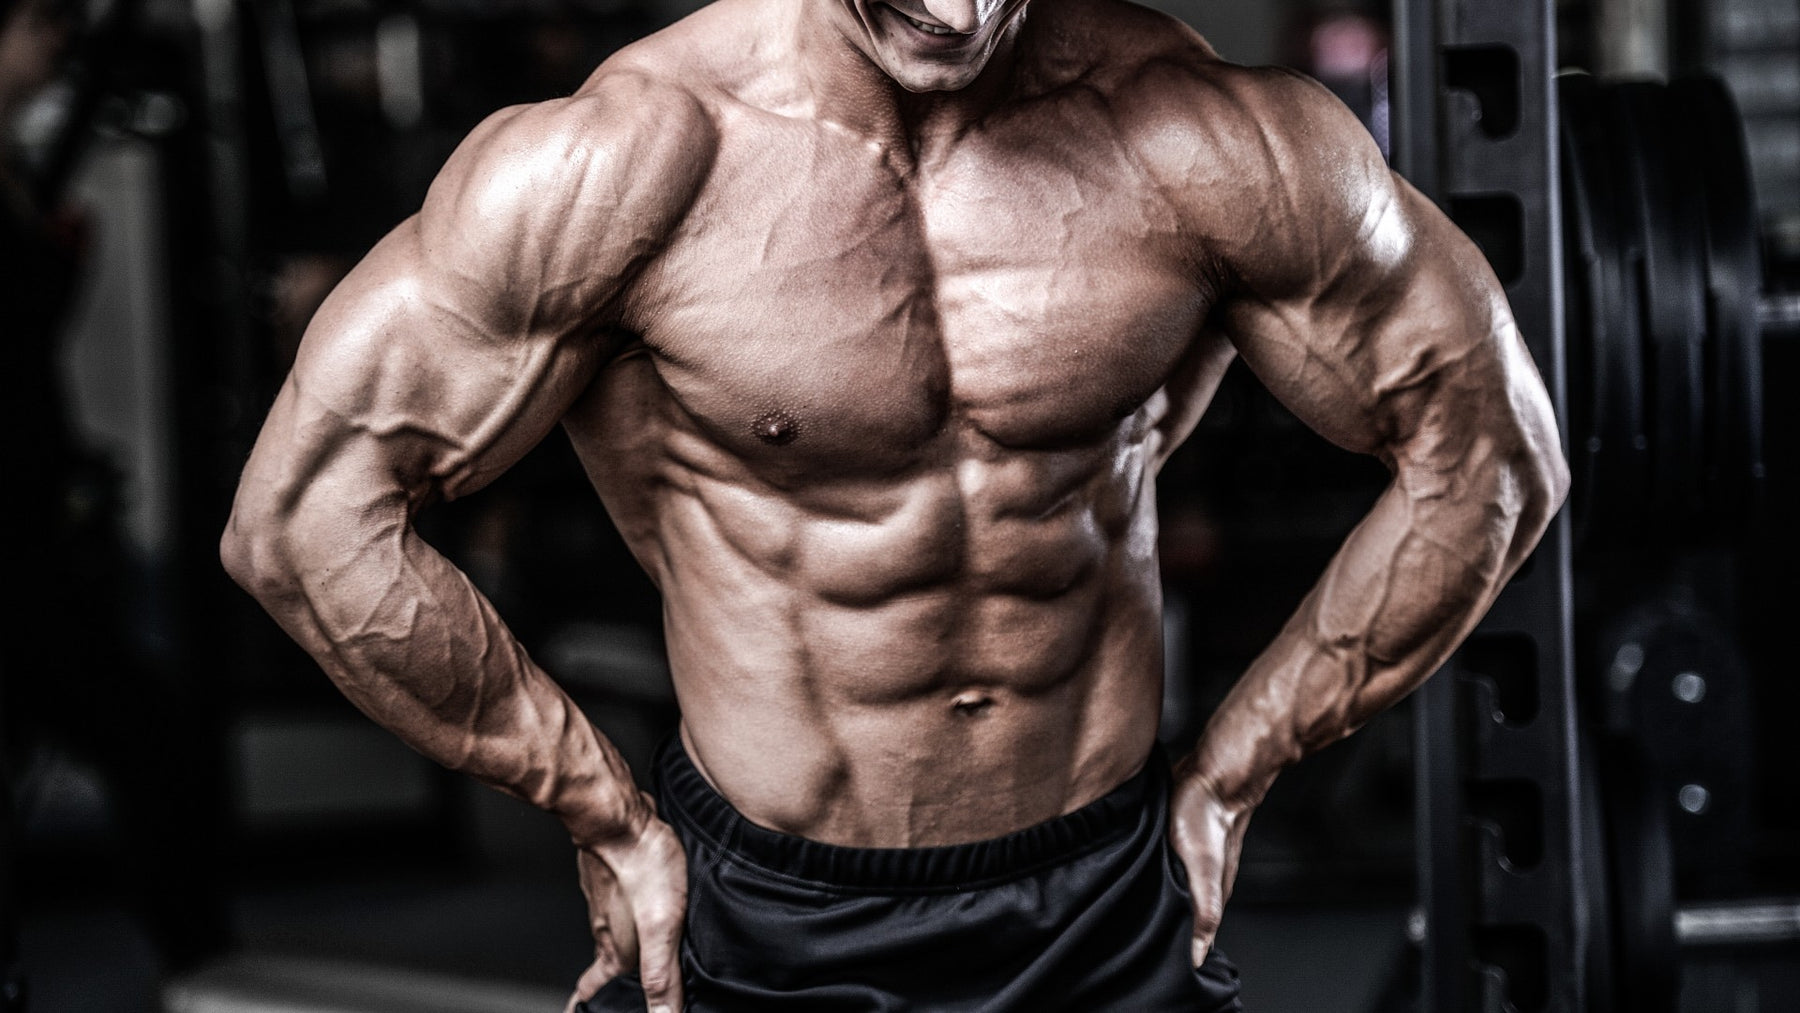 L Citrulline - Comprehensive Guide to Benefits and Dosage